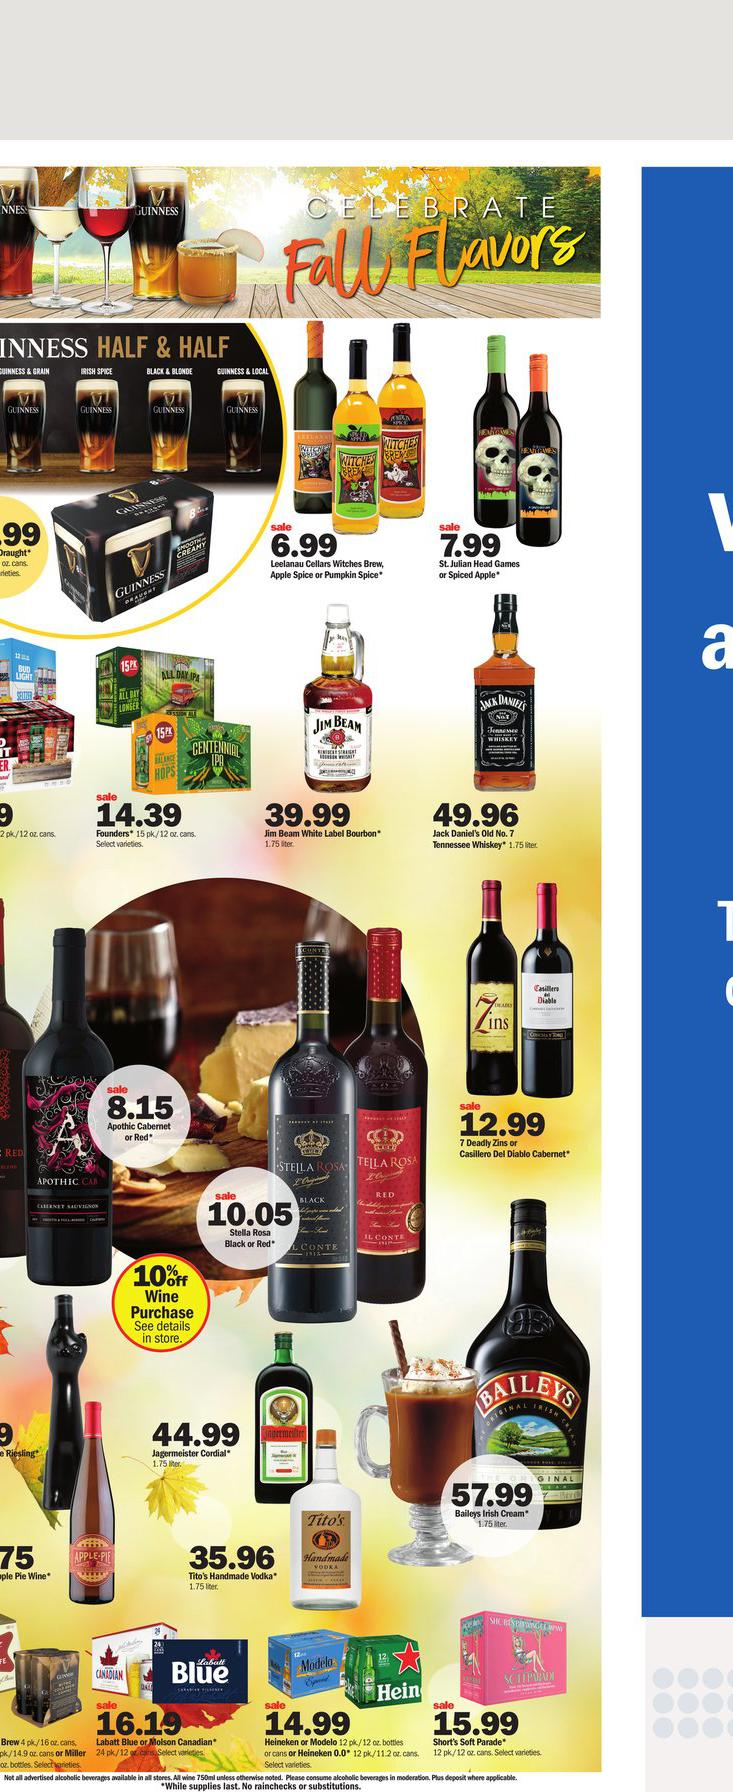 10.10.2021 Meijer ad 10. page